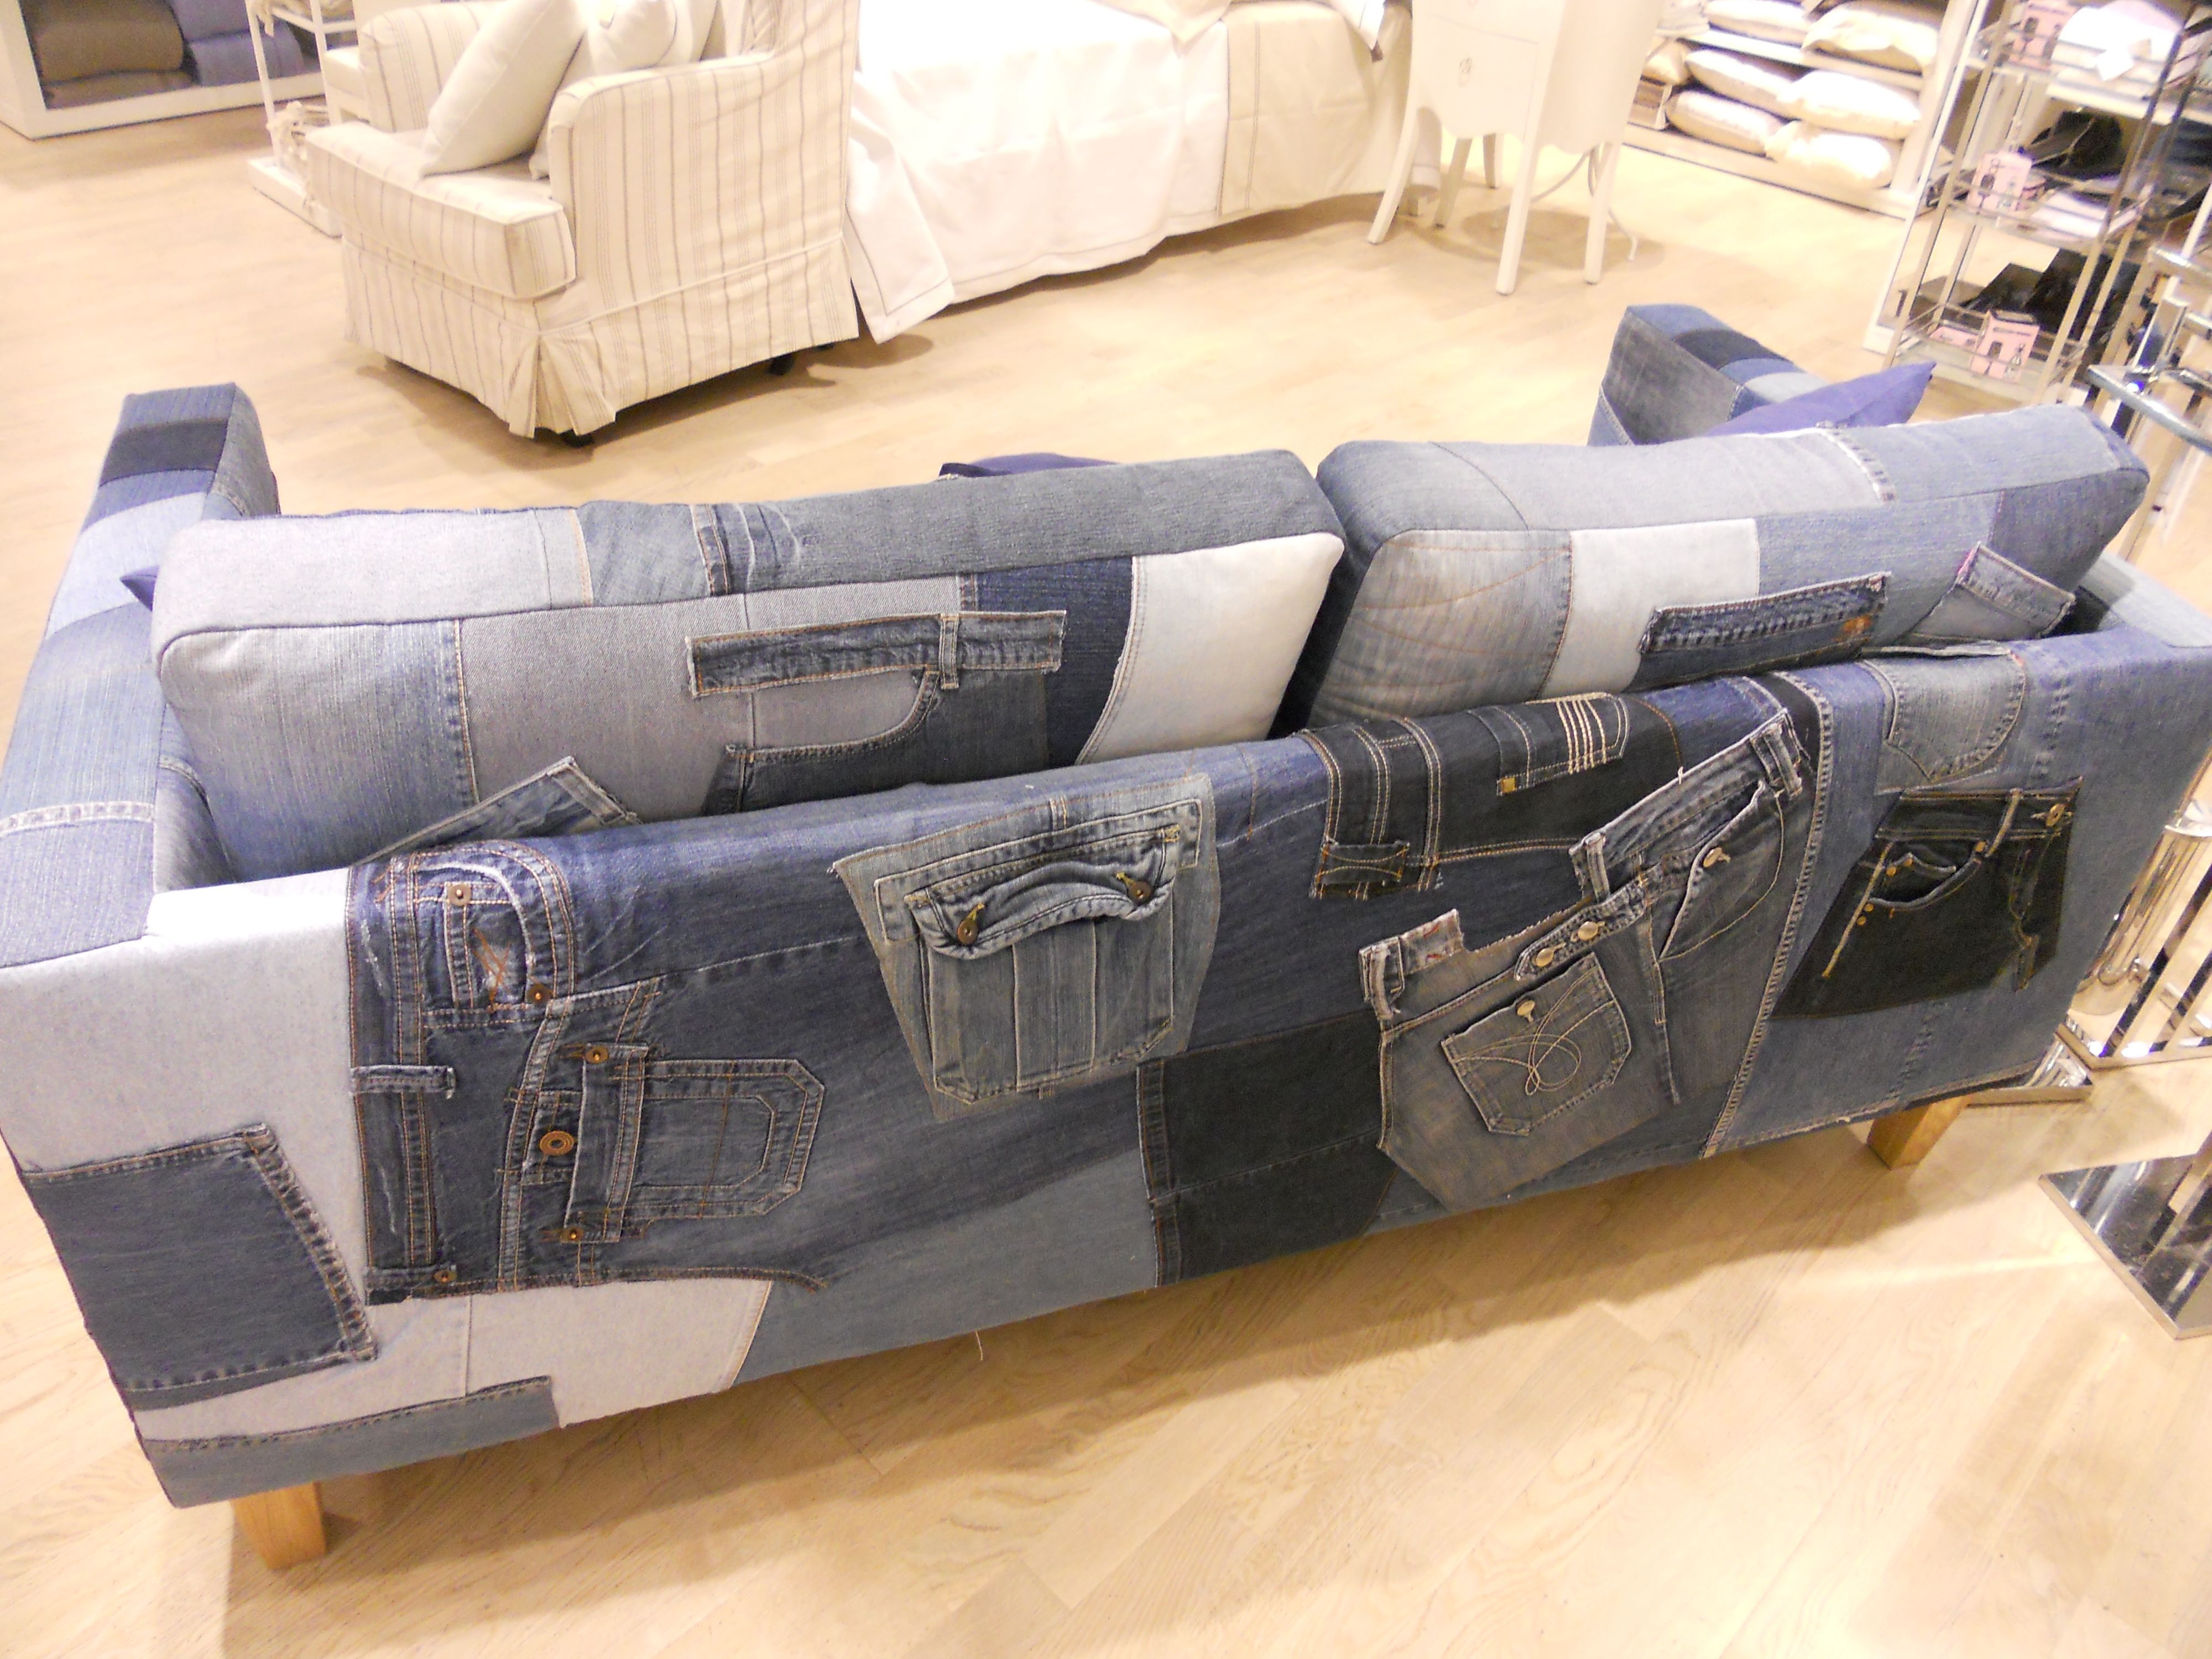 50 Denim Jeans Re purpose Recycle Crafty Inspirations